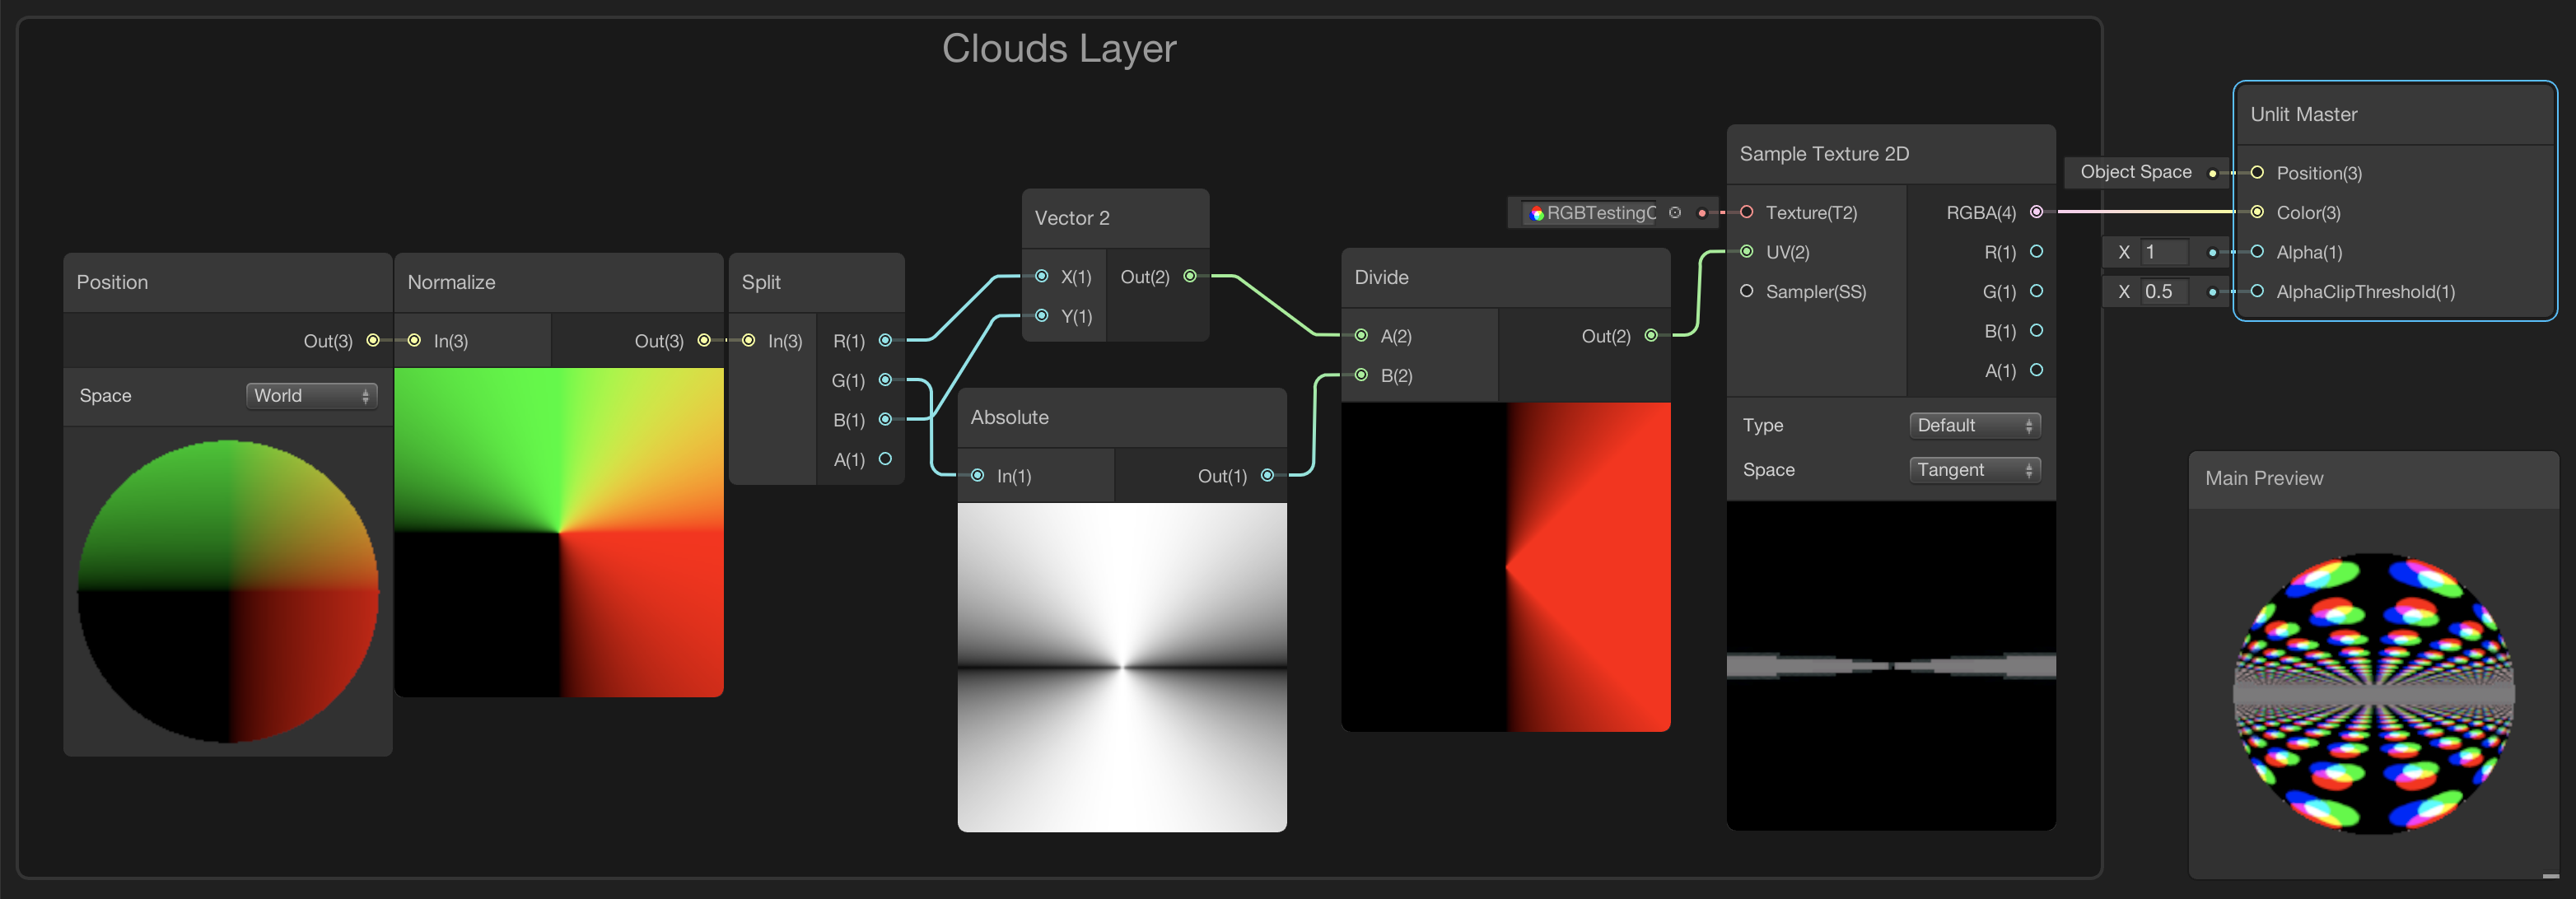 Image displaying the clouds layer shader graph nodes setup.